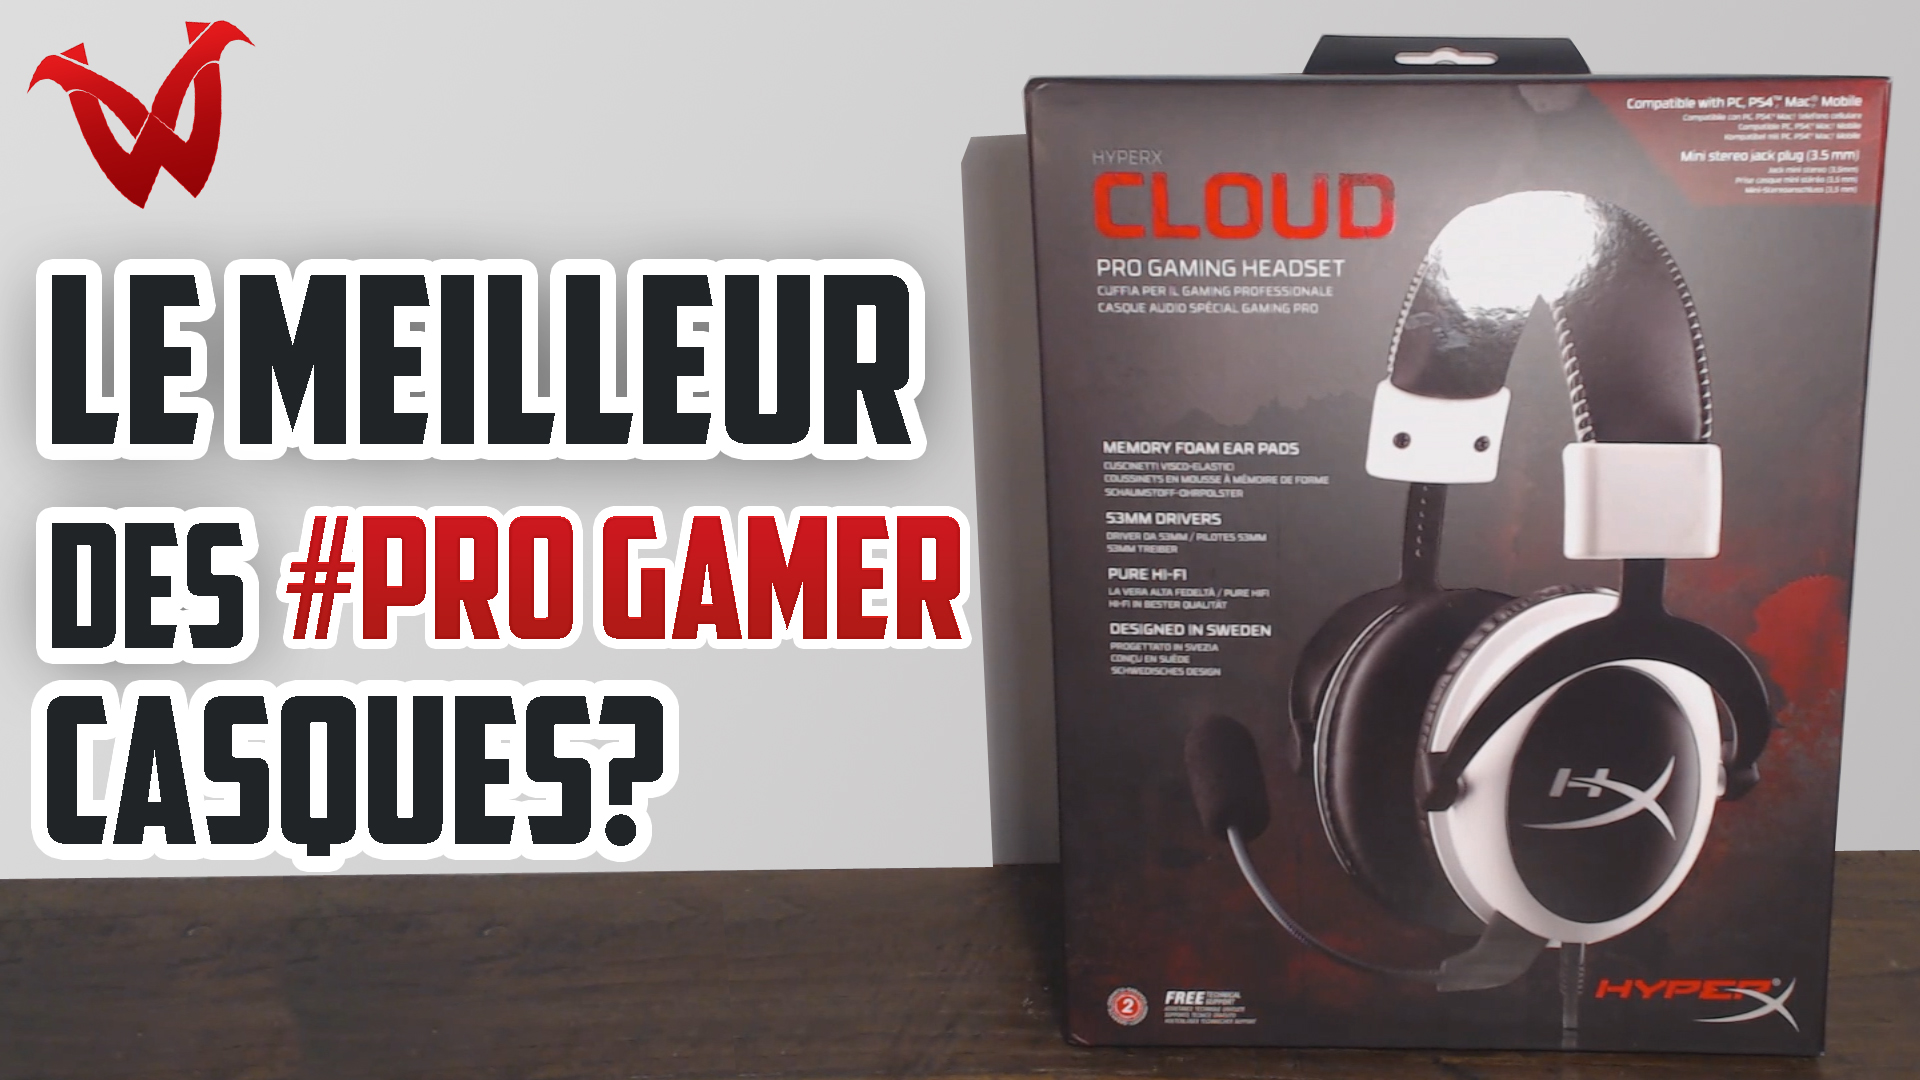 casque gamer kingston hyperx cloud